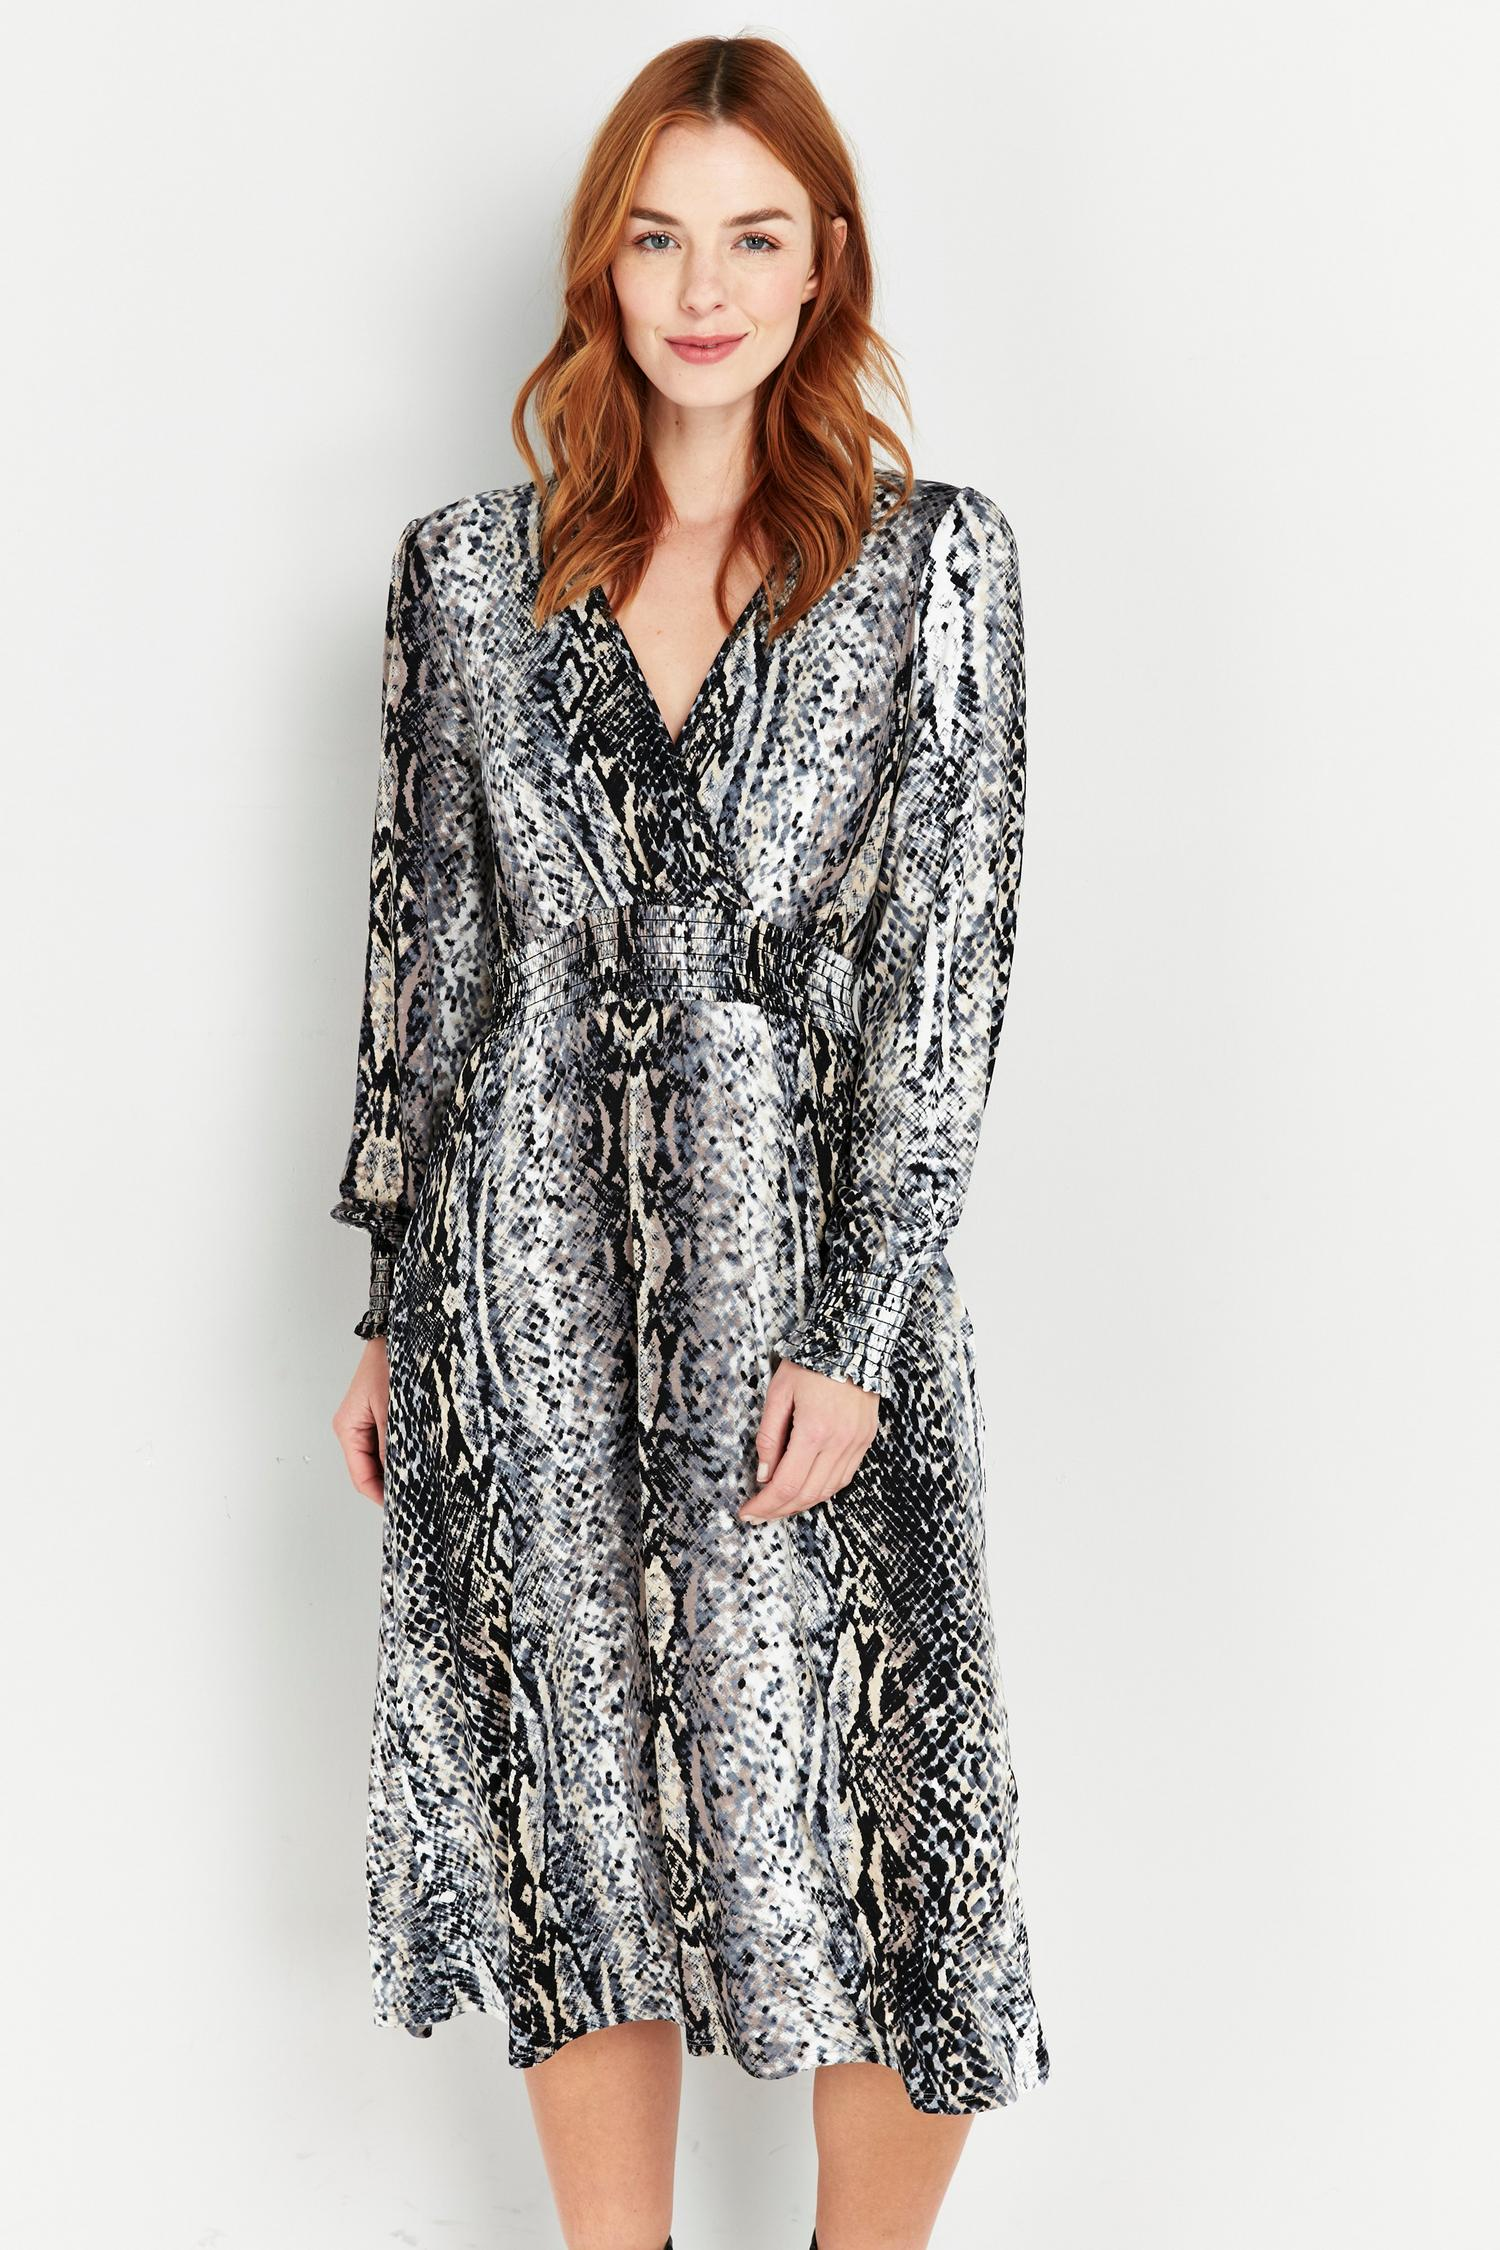 131 Grey Snake Print Wrap Dress image number 1